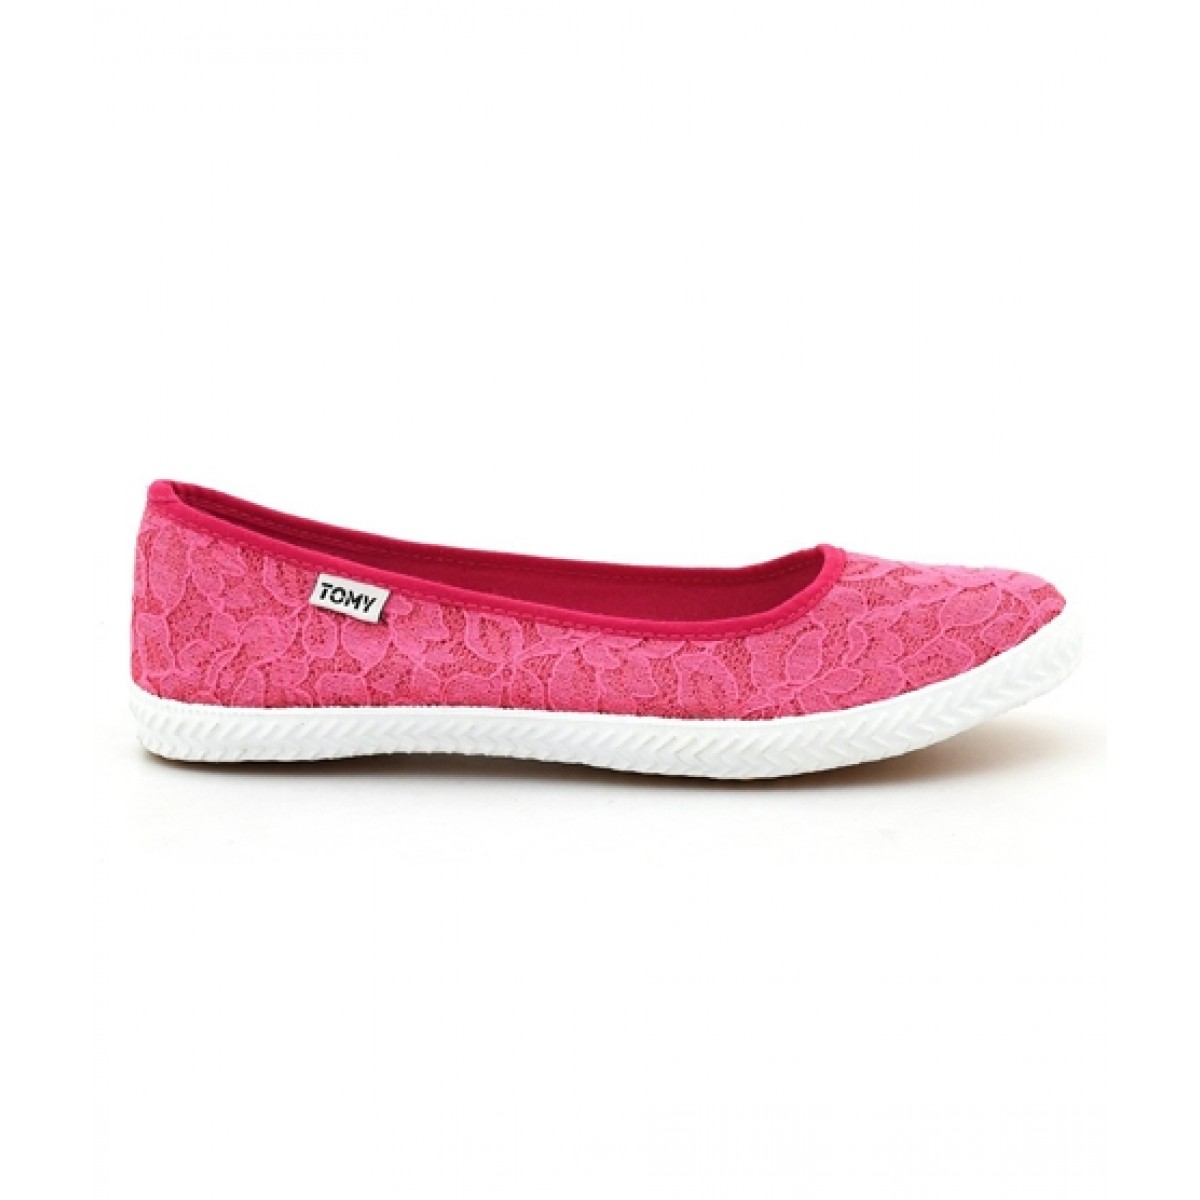 Bata Tommy Takkies Pump Shoes For Women (589-5064)